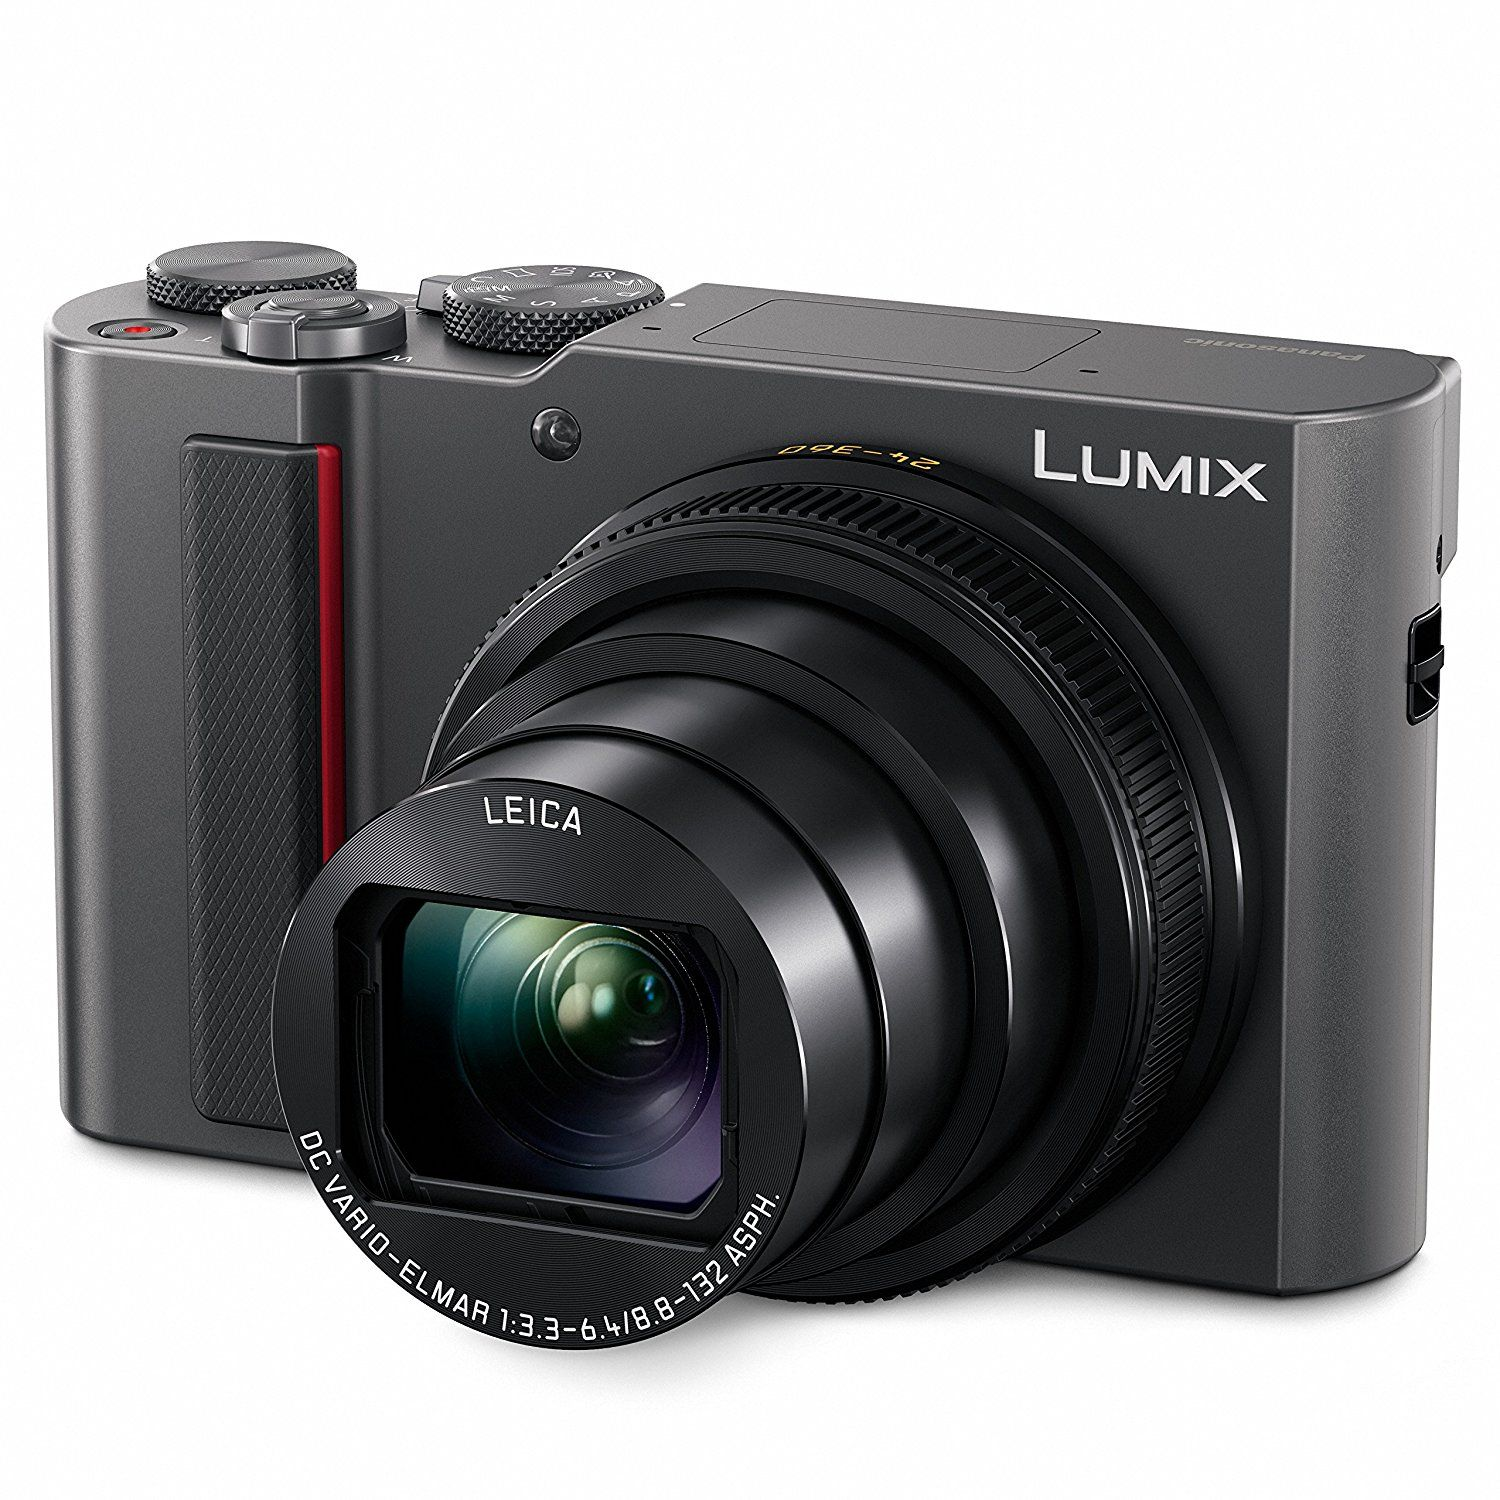 Amazon Com Panasonic Lumix Zs200 15x Leica Dc Lens With Stabilization 20 1 Megapixel Large 1 Inch Low Light Sensor Dc Zs200s Usa S Panasonic Camera Camera Best Camera